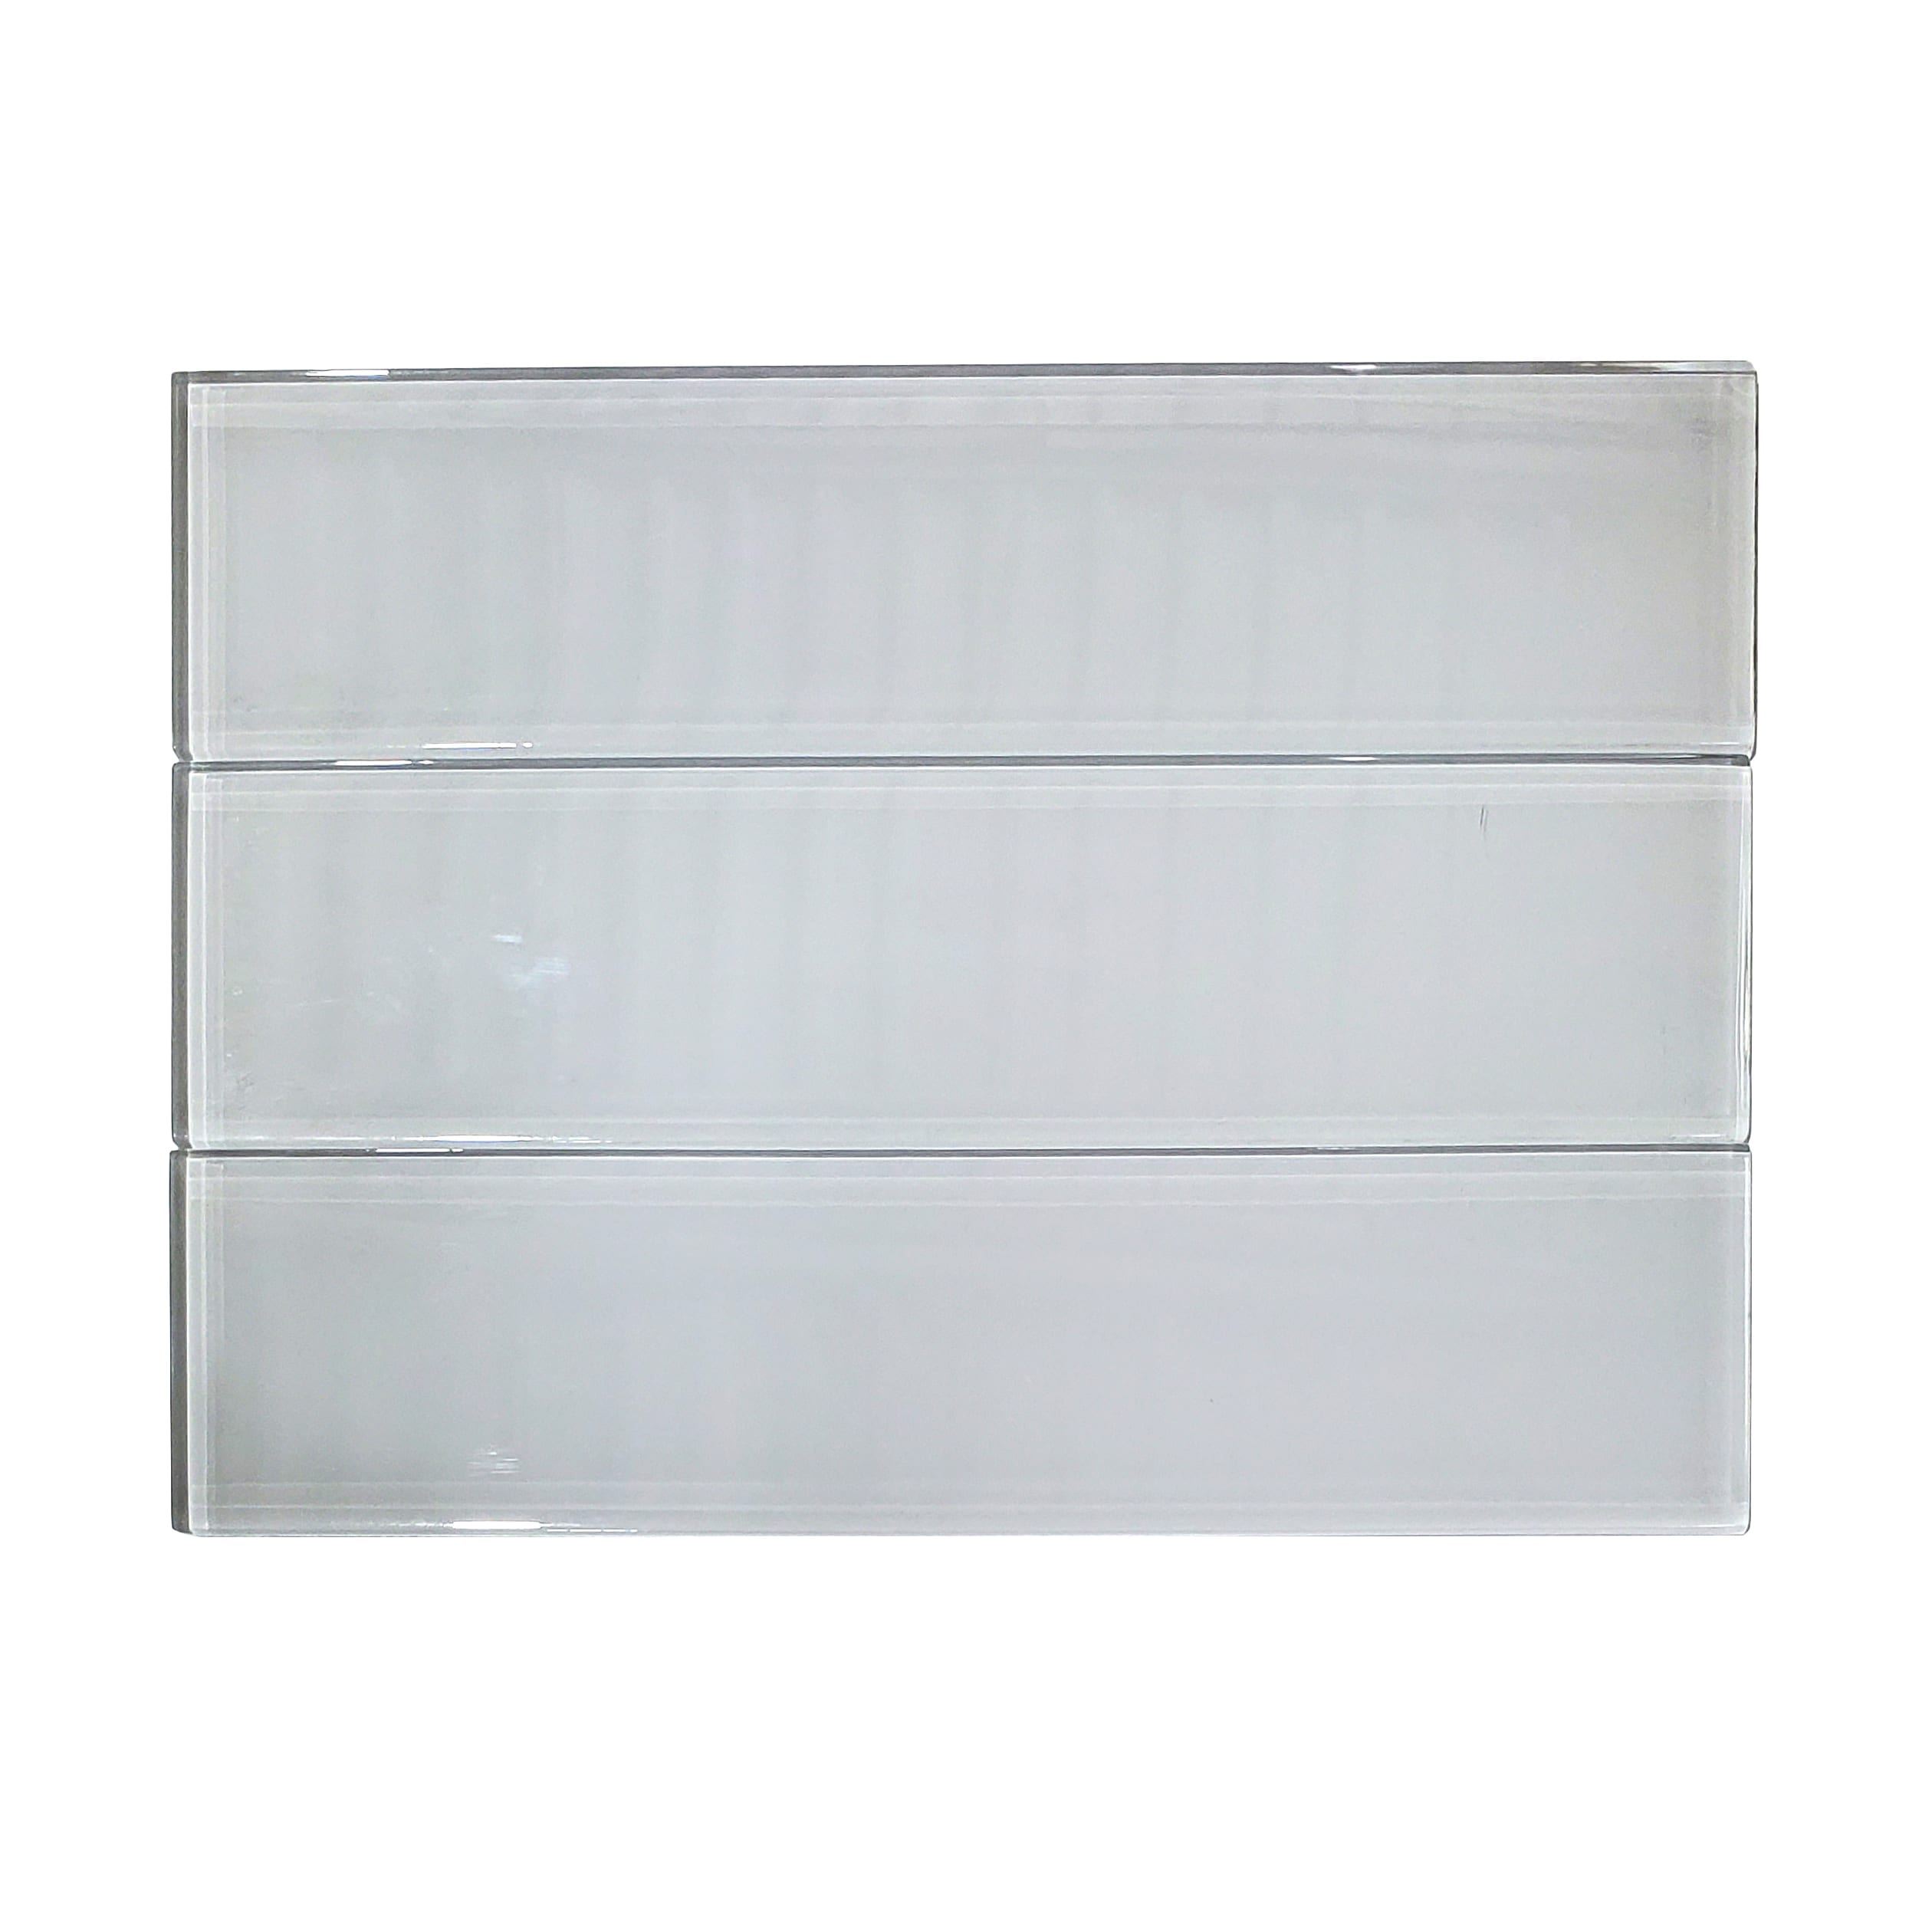 3×12 Element Glass Tile_Ice_5sfct_7.99